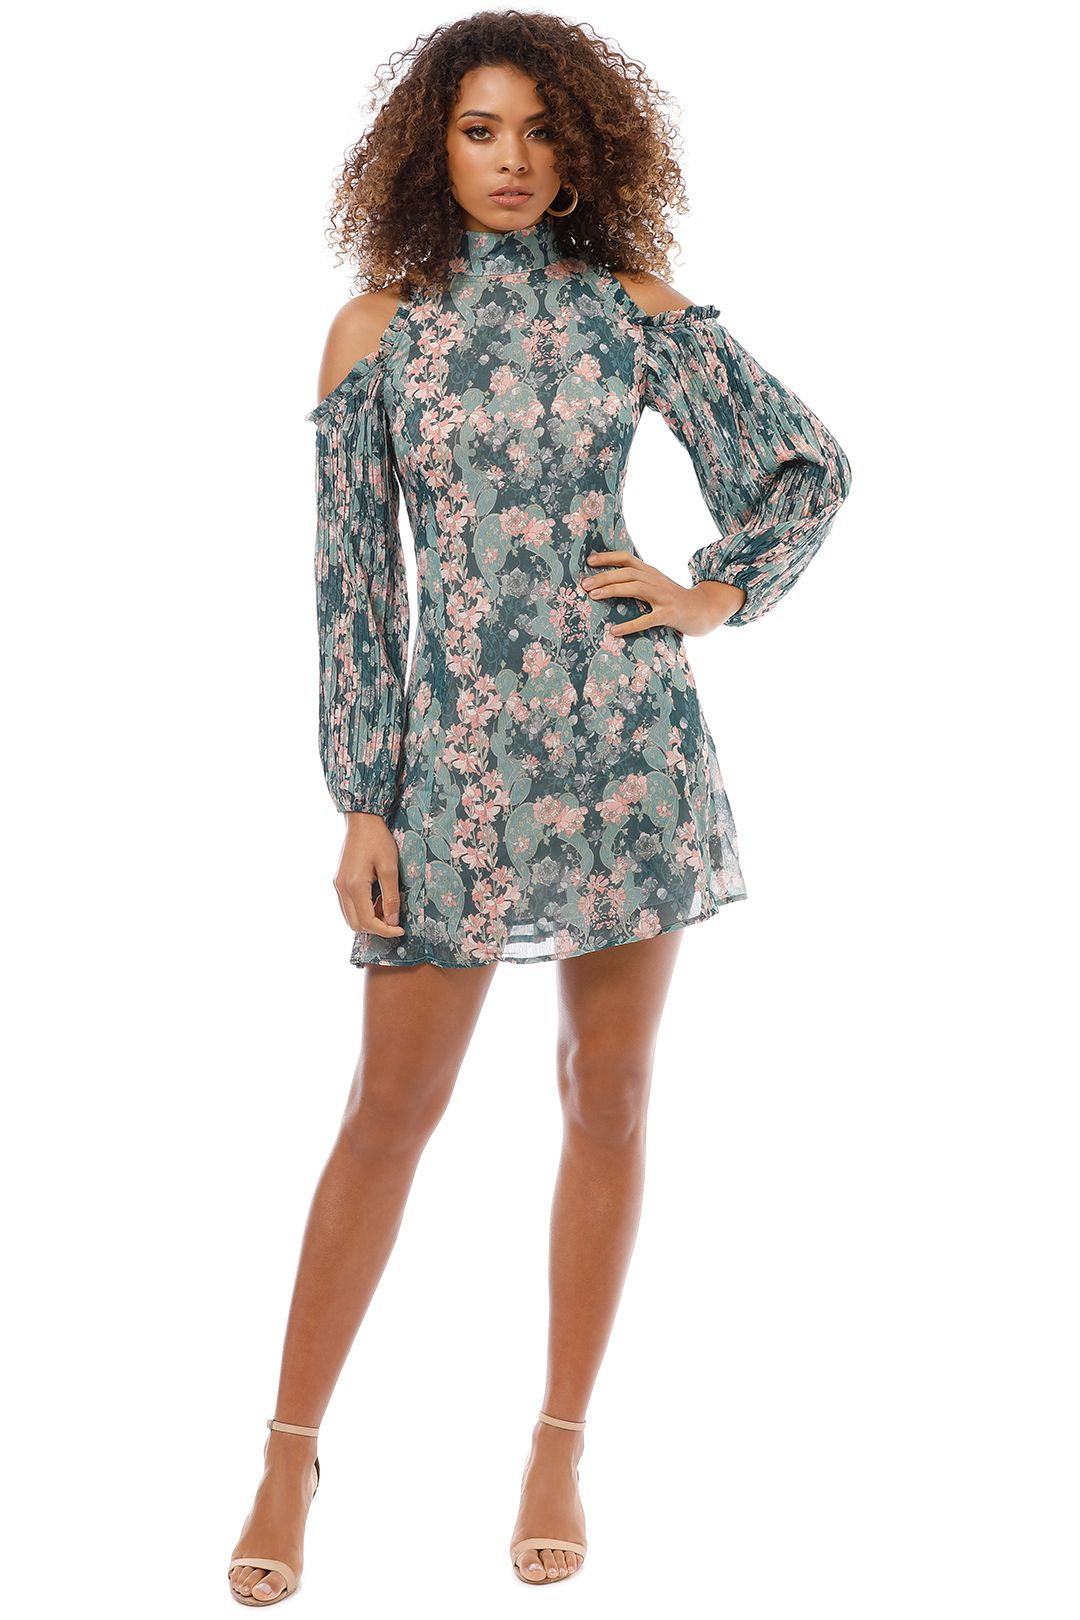 We Are Kindred - Laetitia Pleat Sleeve Mini Dress - Nouveau - Front